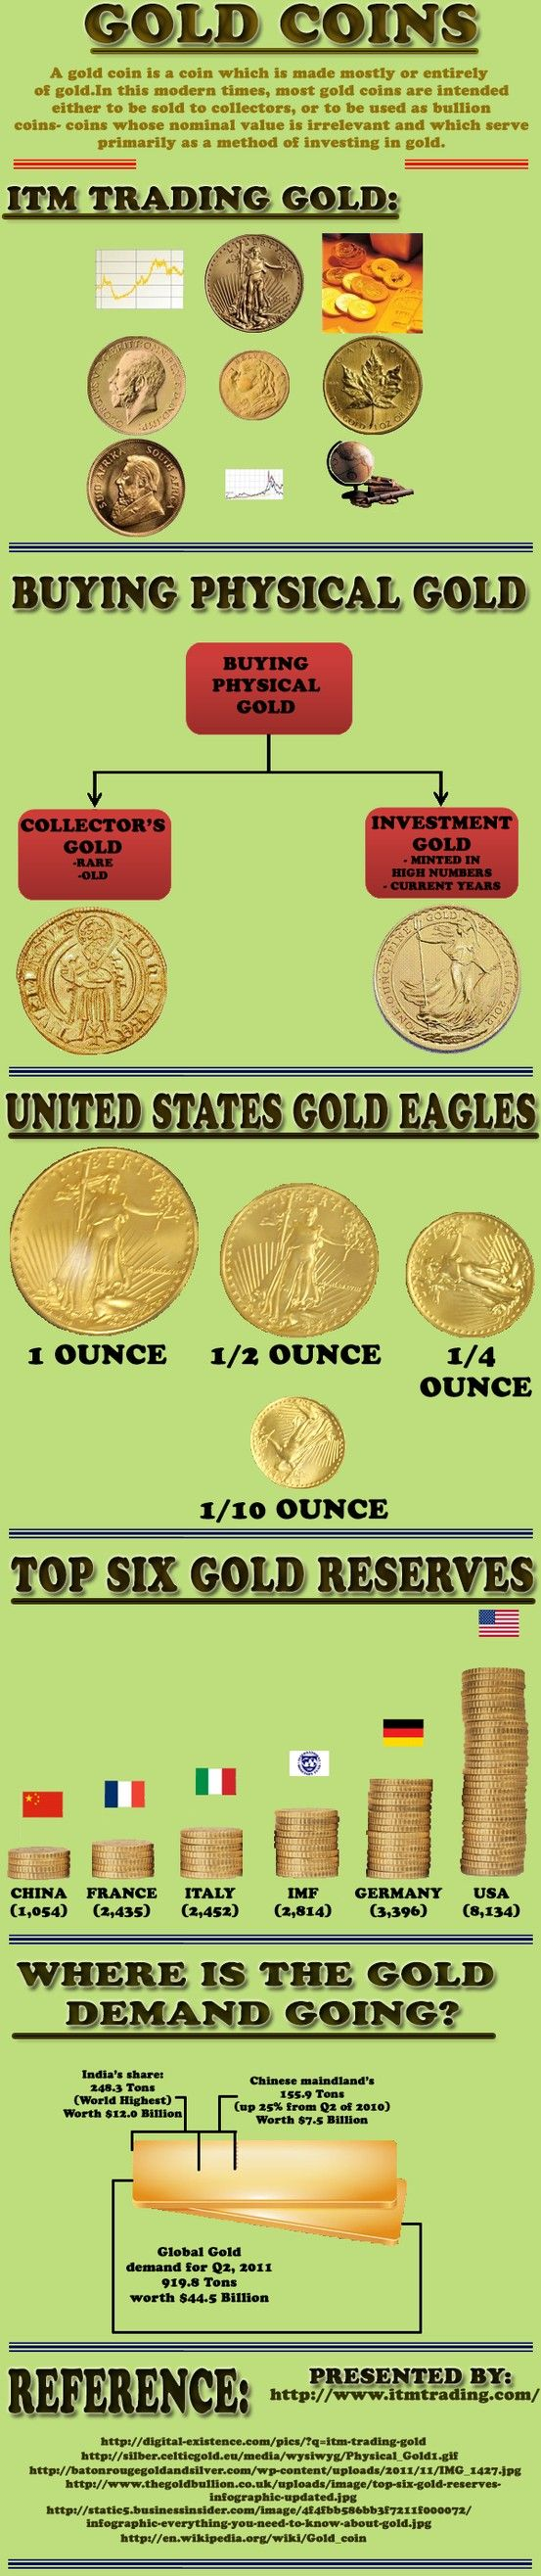 The given infochart here discribes about ITM Trading Co., who are the premier source for all types of genuine and pure, graded gold and silver coins for investment. You can avail of various types of gold and silver coins like- bullion coins, maple leaf coins, and other metals too. For all the precious and rare coins of nation, ITM is one-stop solution for buying as well as selling options. http://www.itmtrading.com/